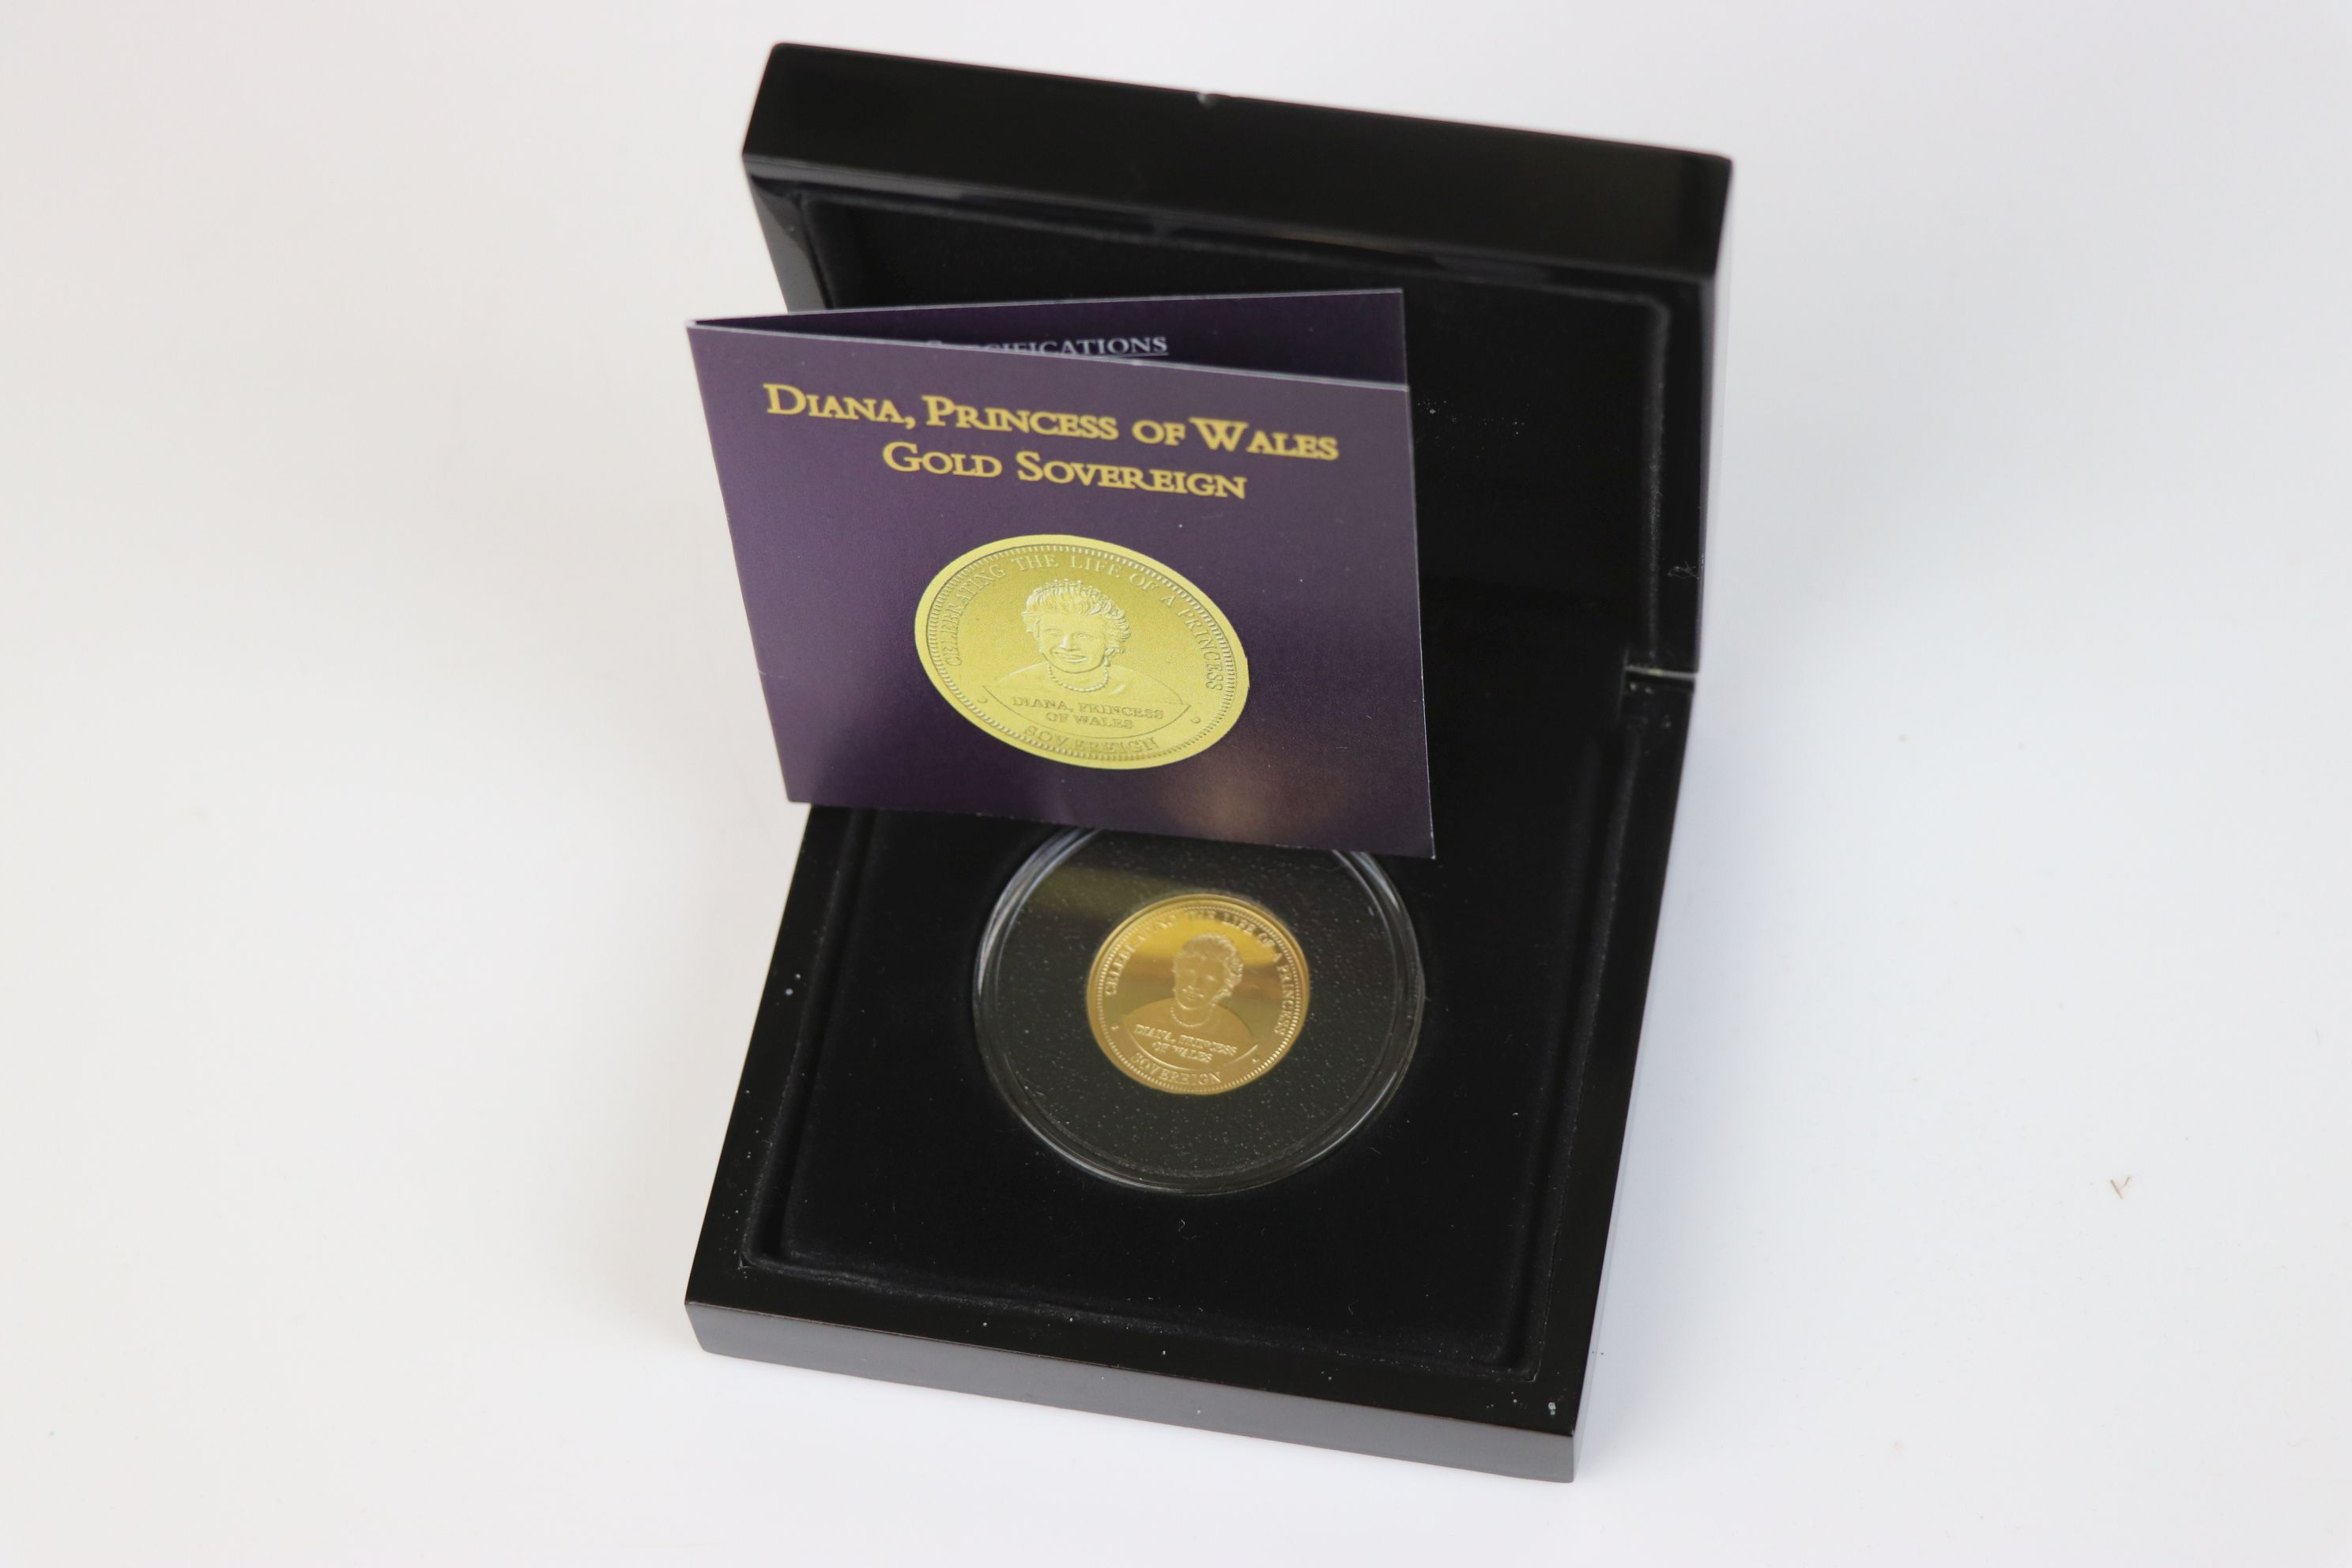 A cased Bradford Exchange limited edition Tristan Da Cunha 2007 Diana Princess of Wales gold proof - Image 5 of 5